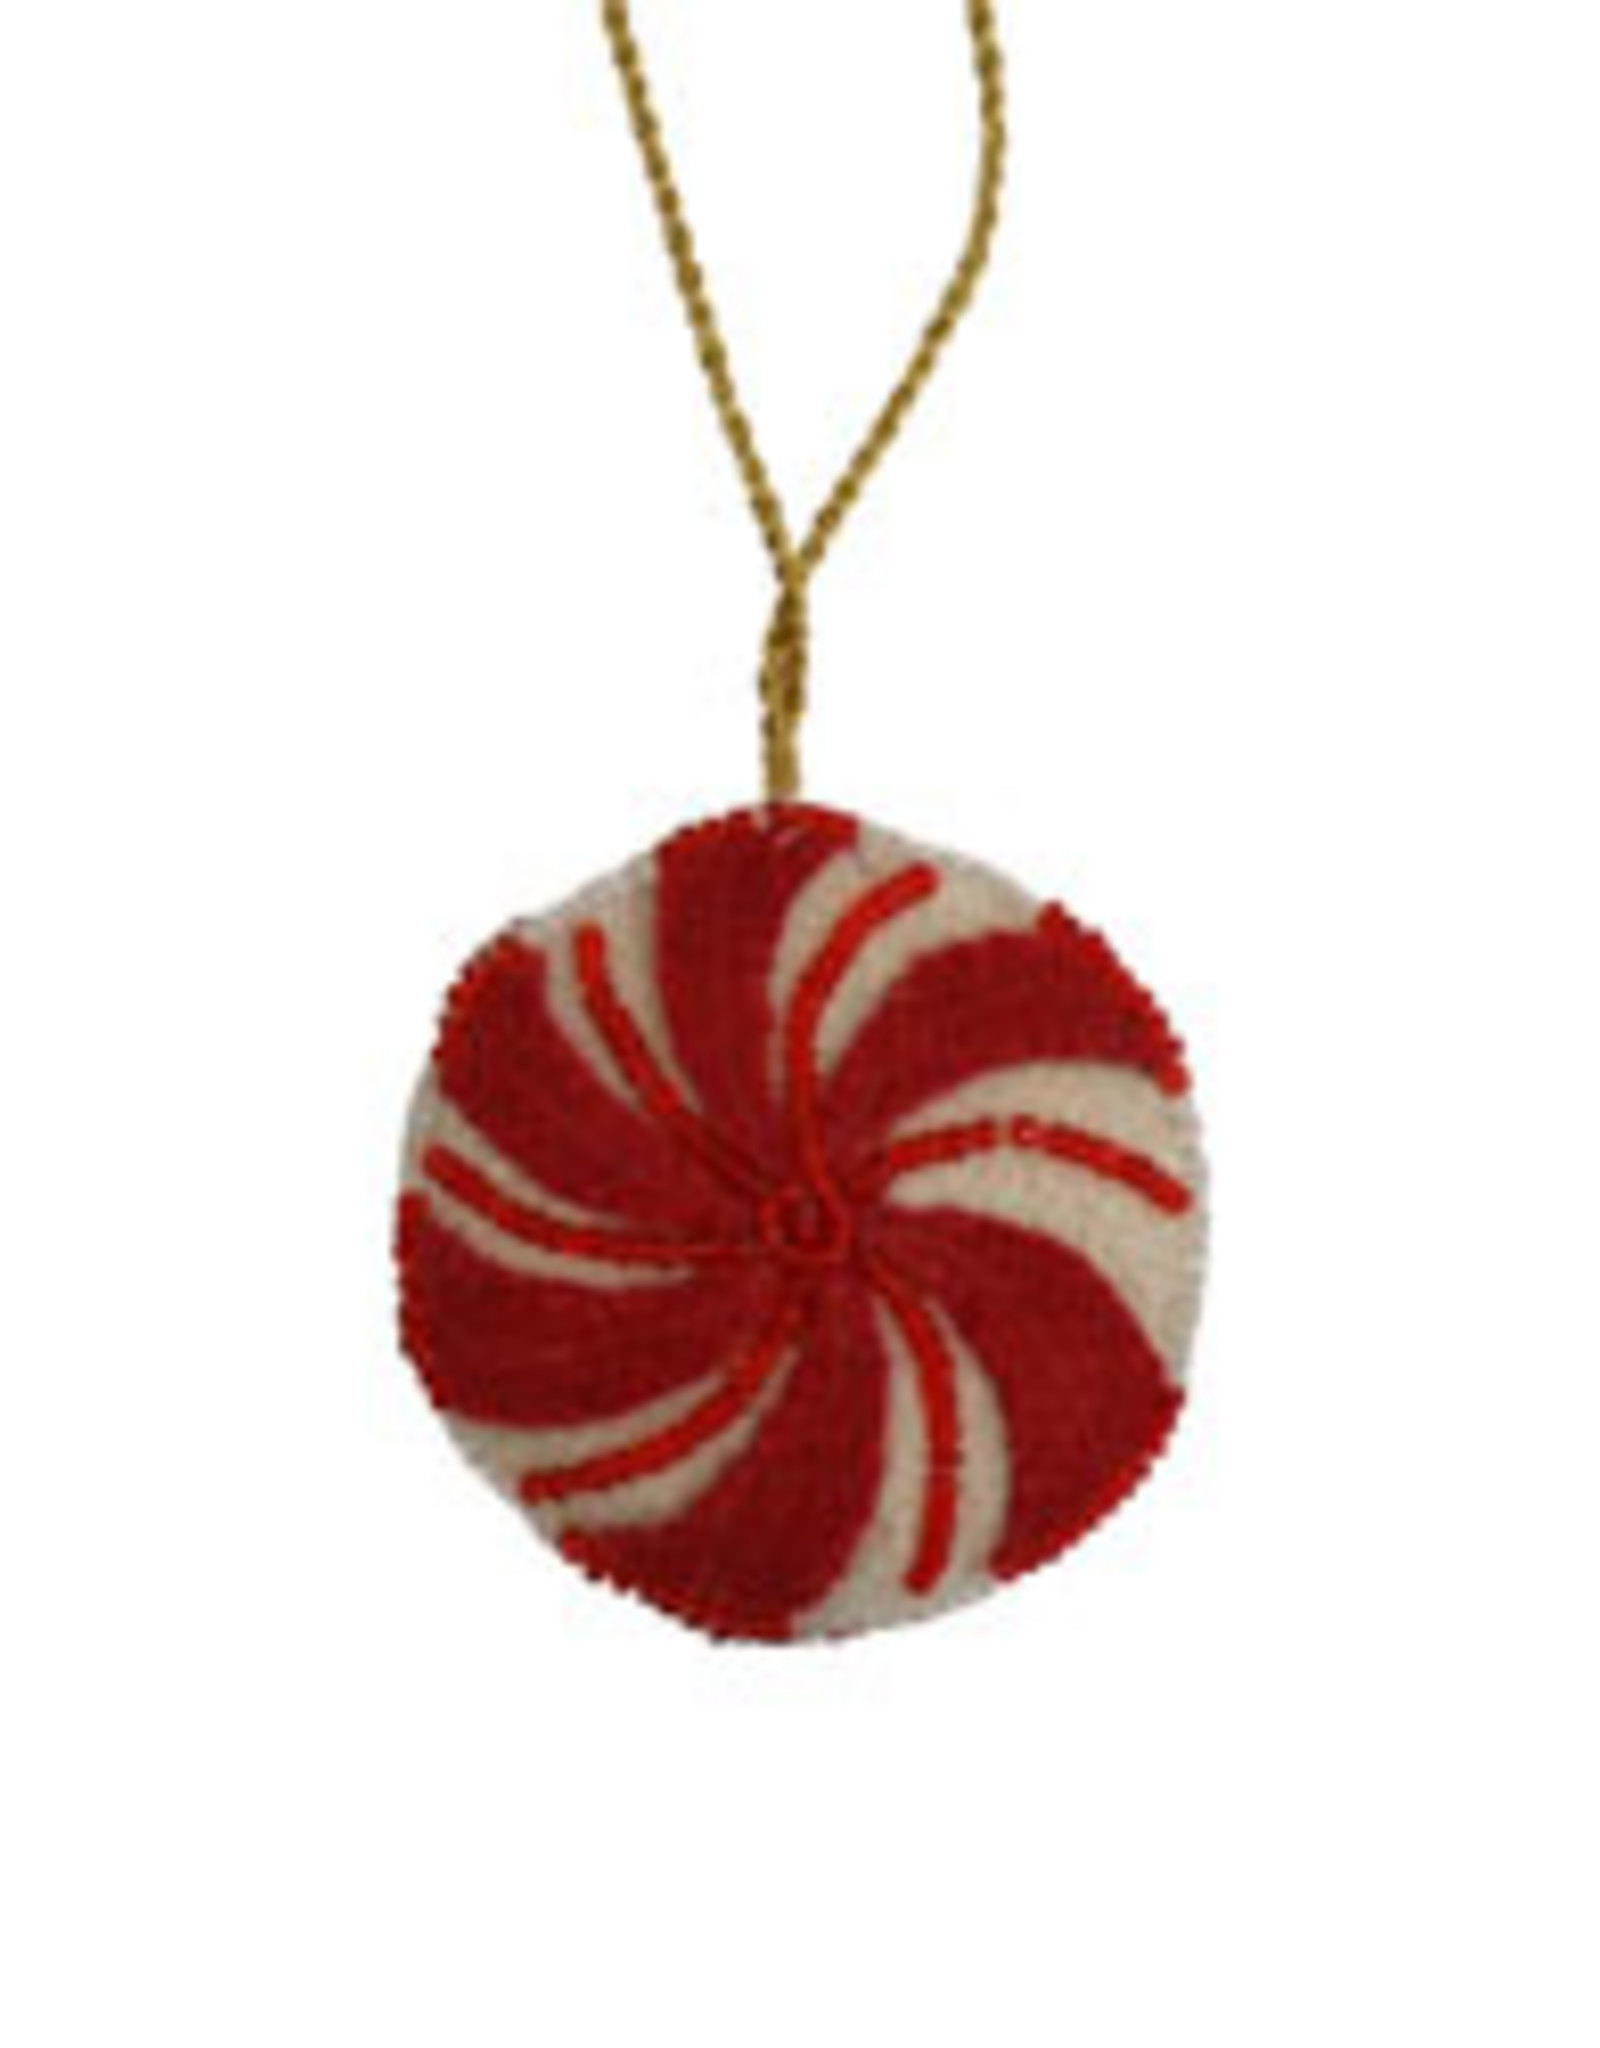 Felted Peppermint Drop Ornament, India